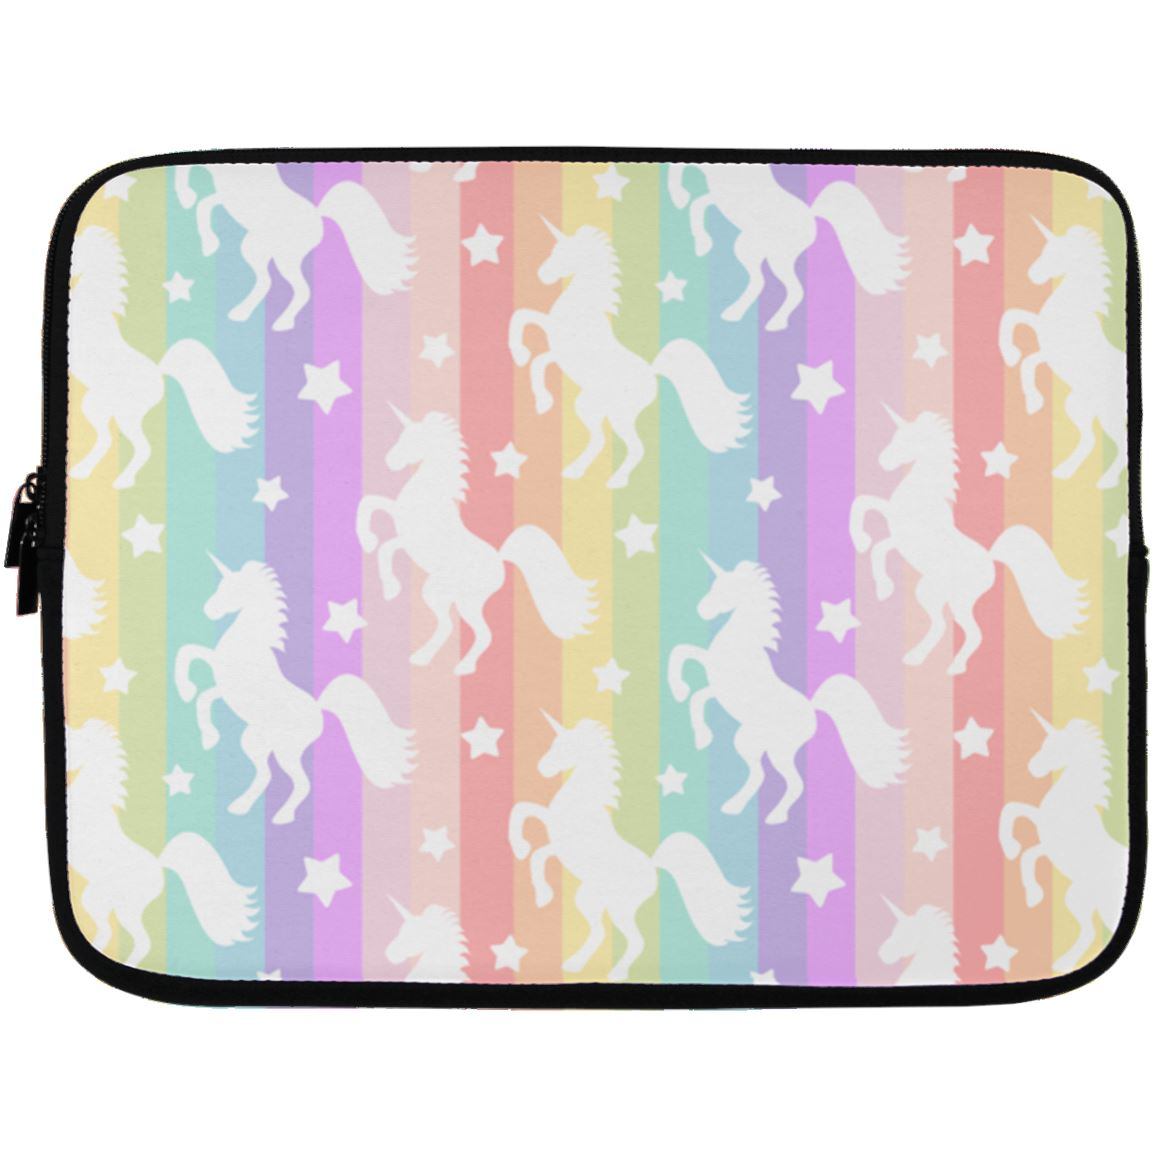 Unicorn Rainbows Laptop Sleeve Apparel Laptop Sleeve - 13 inch White One Size